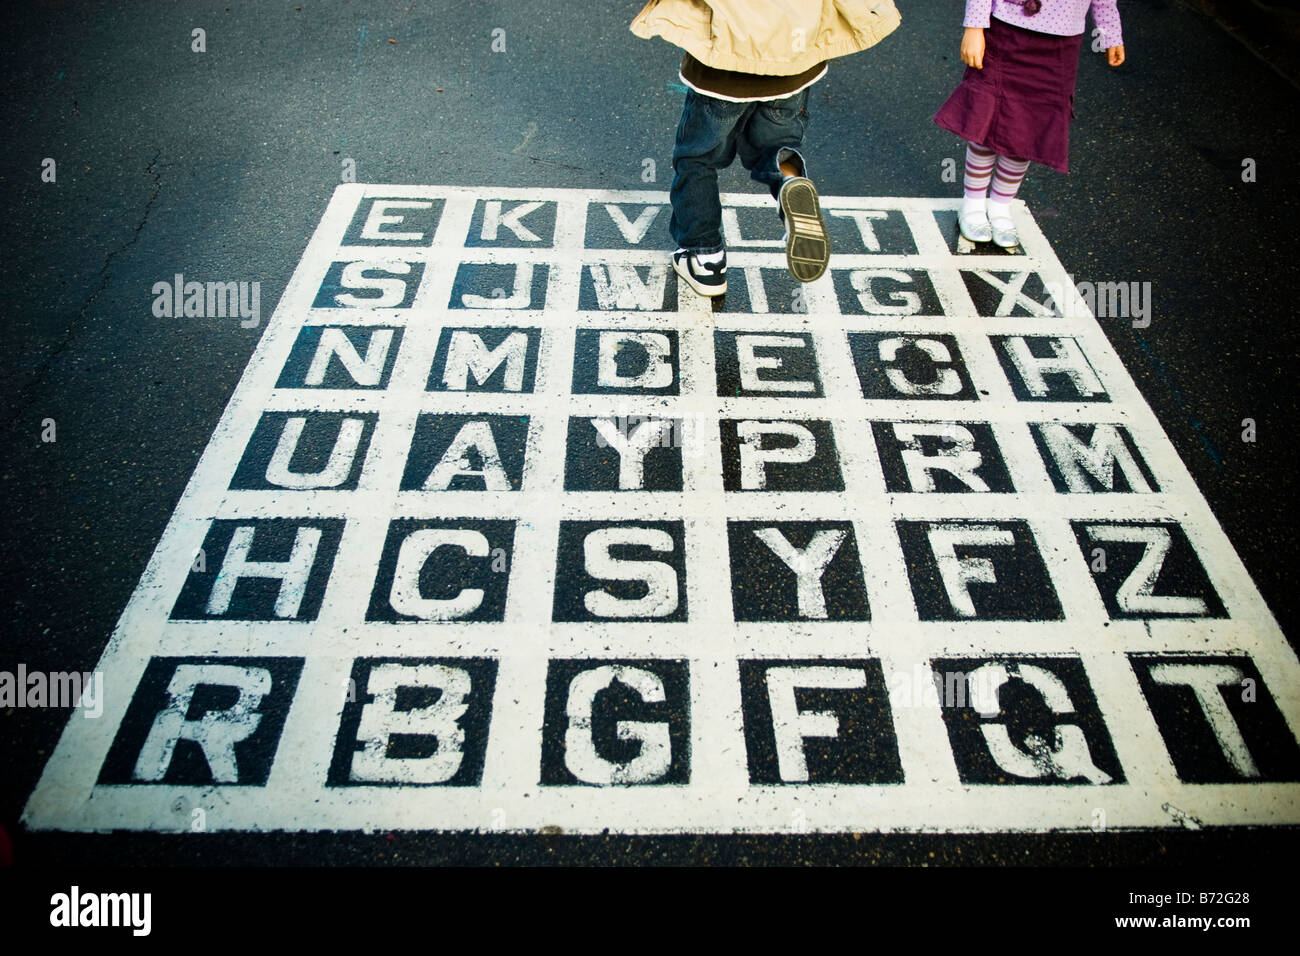 Kids play on an asphalt alphabet game in the school yard. Stock Photo